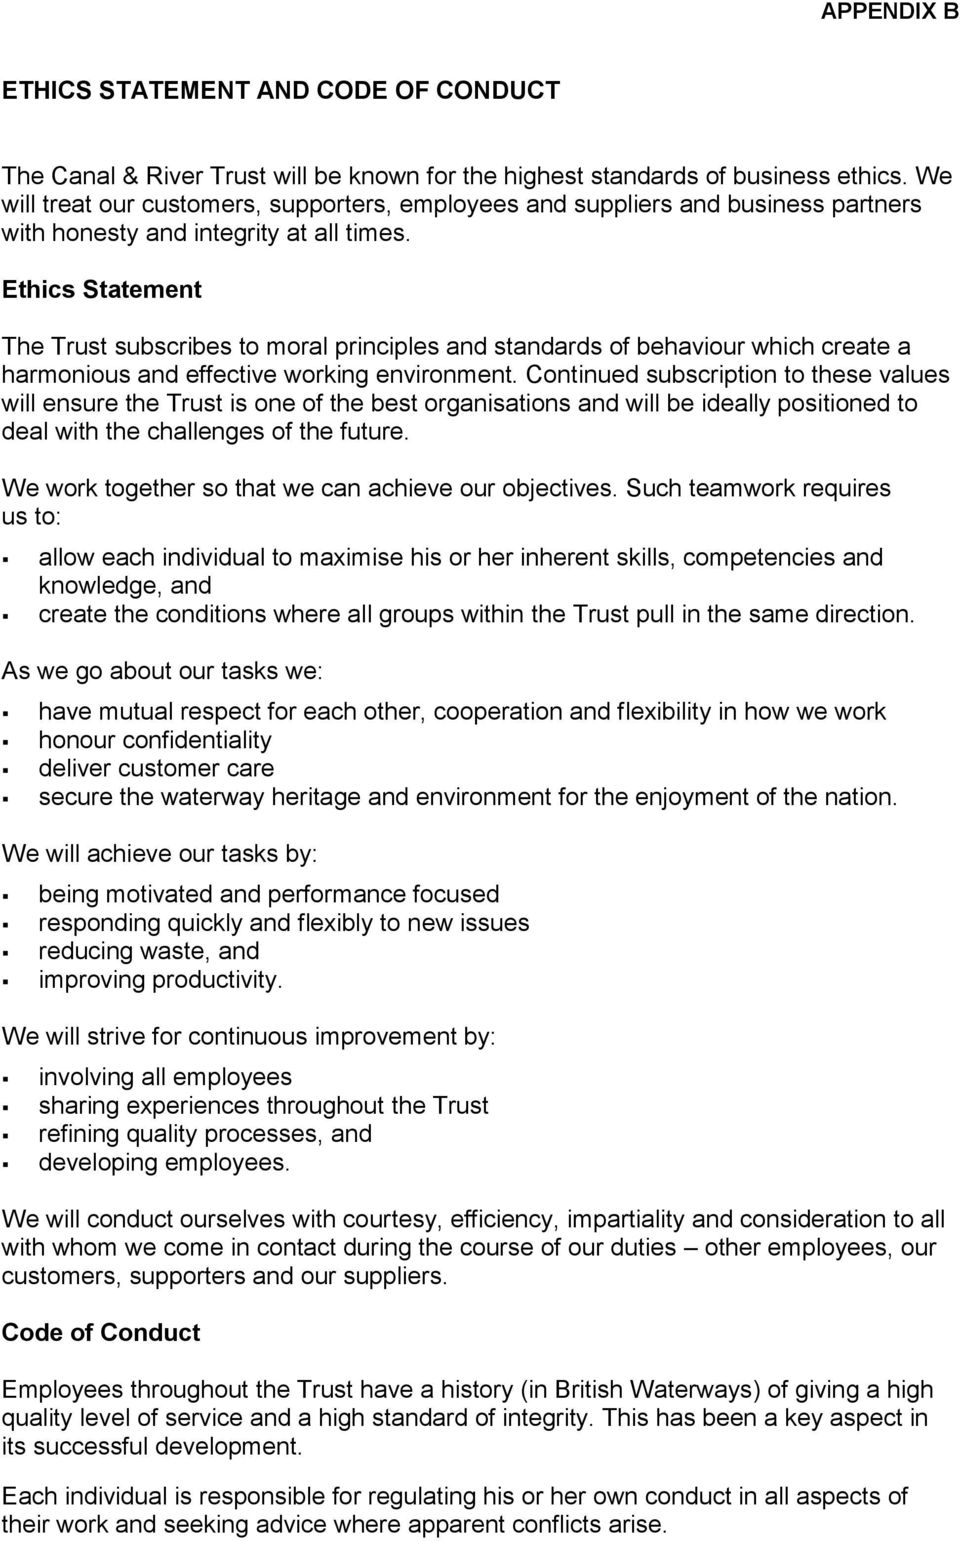 Ethics Statement The Trust subscribes to moral principles and standards of behaviour which create a harmonious and effective working environment.